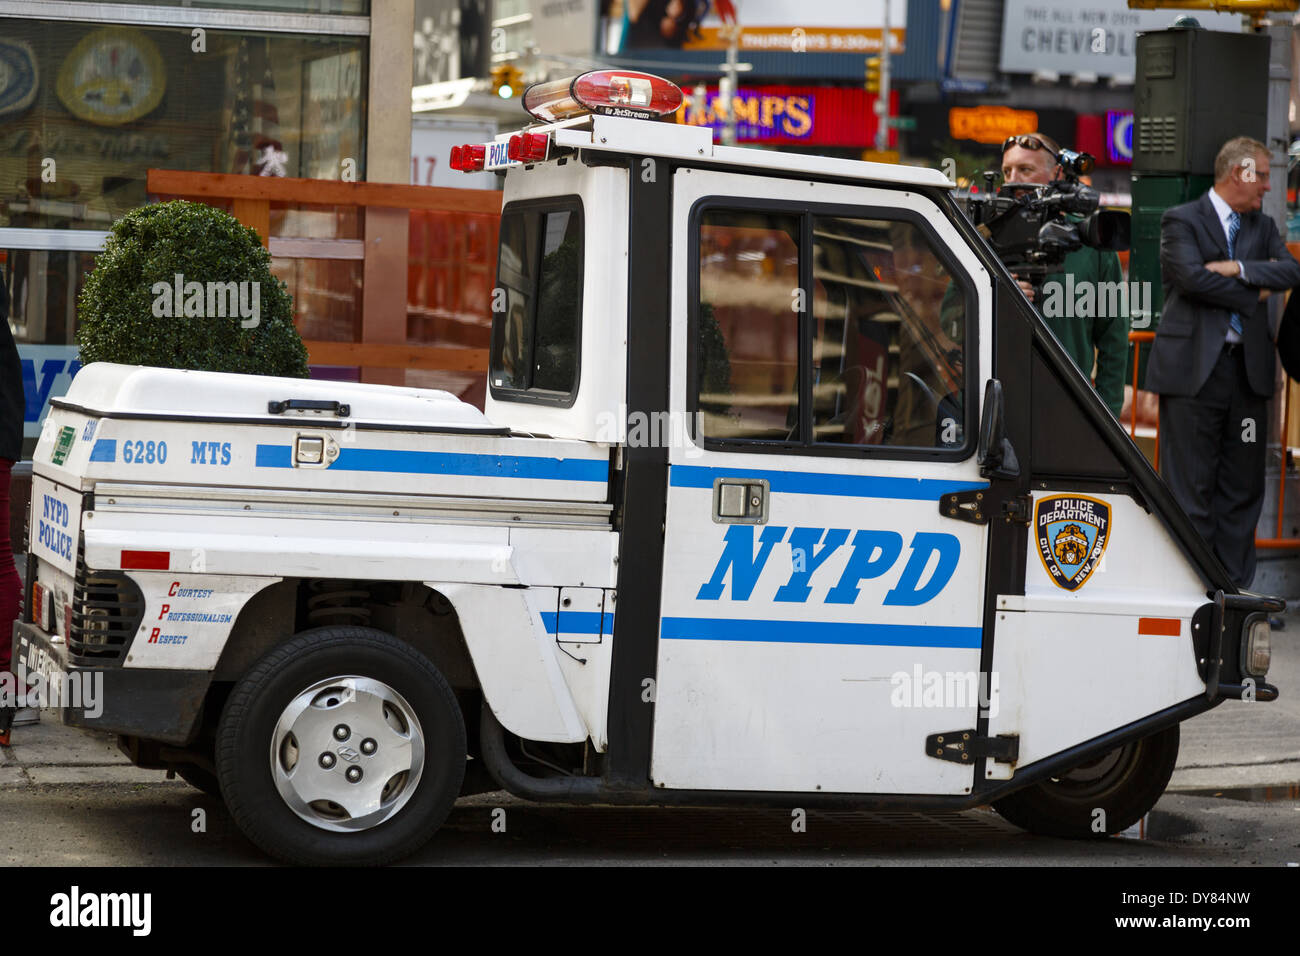 nypd three wheeled vehicle sometimes dubbed meter maid vehicle stock photo 68406181 alamy. Black Bedroom Furniture Sets. Home Design Ideas